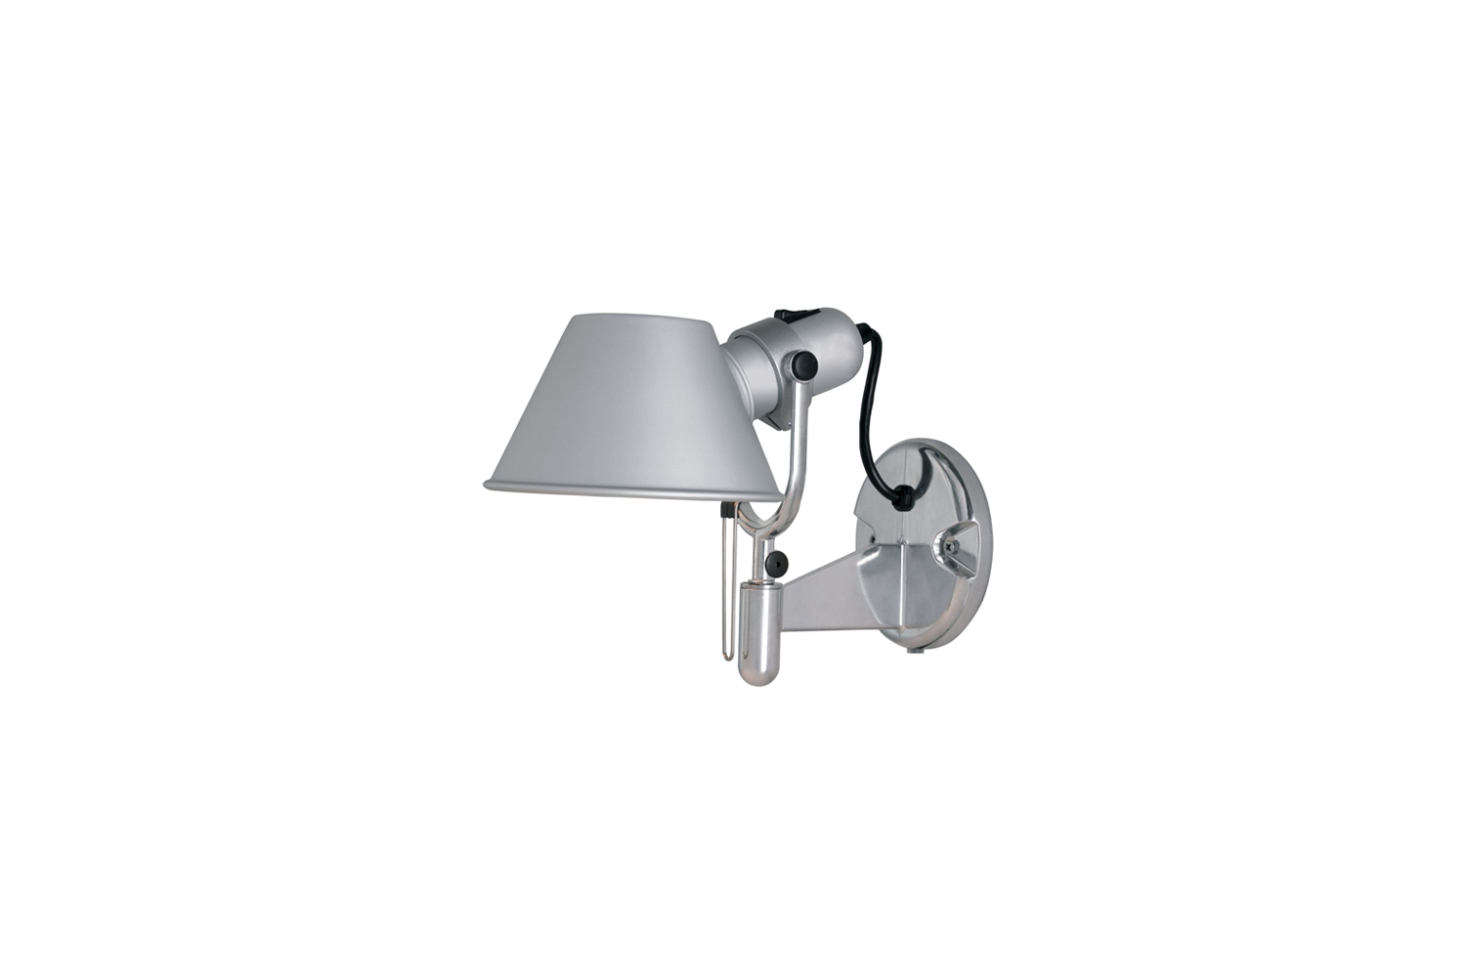 The Artemide Tolomeo Wall Spot Light by Michele De Lucchi and Giancarlo Fassina is $5 from Design Within Reach.